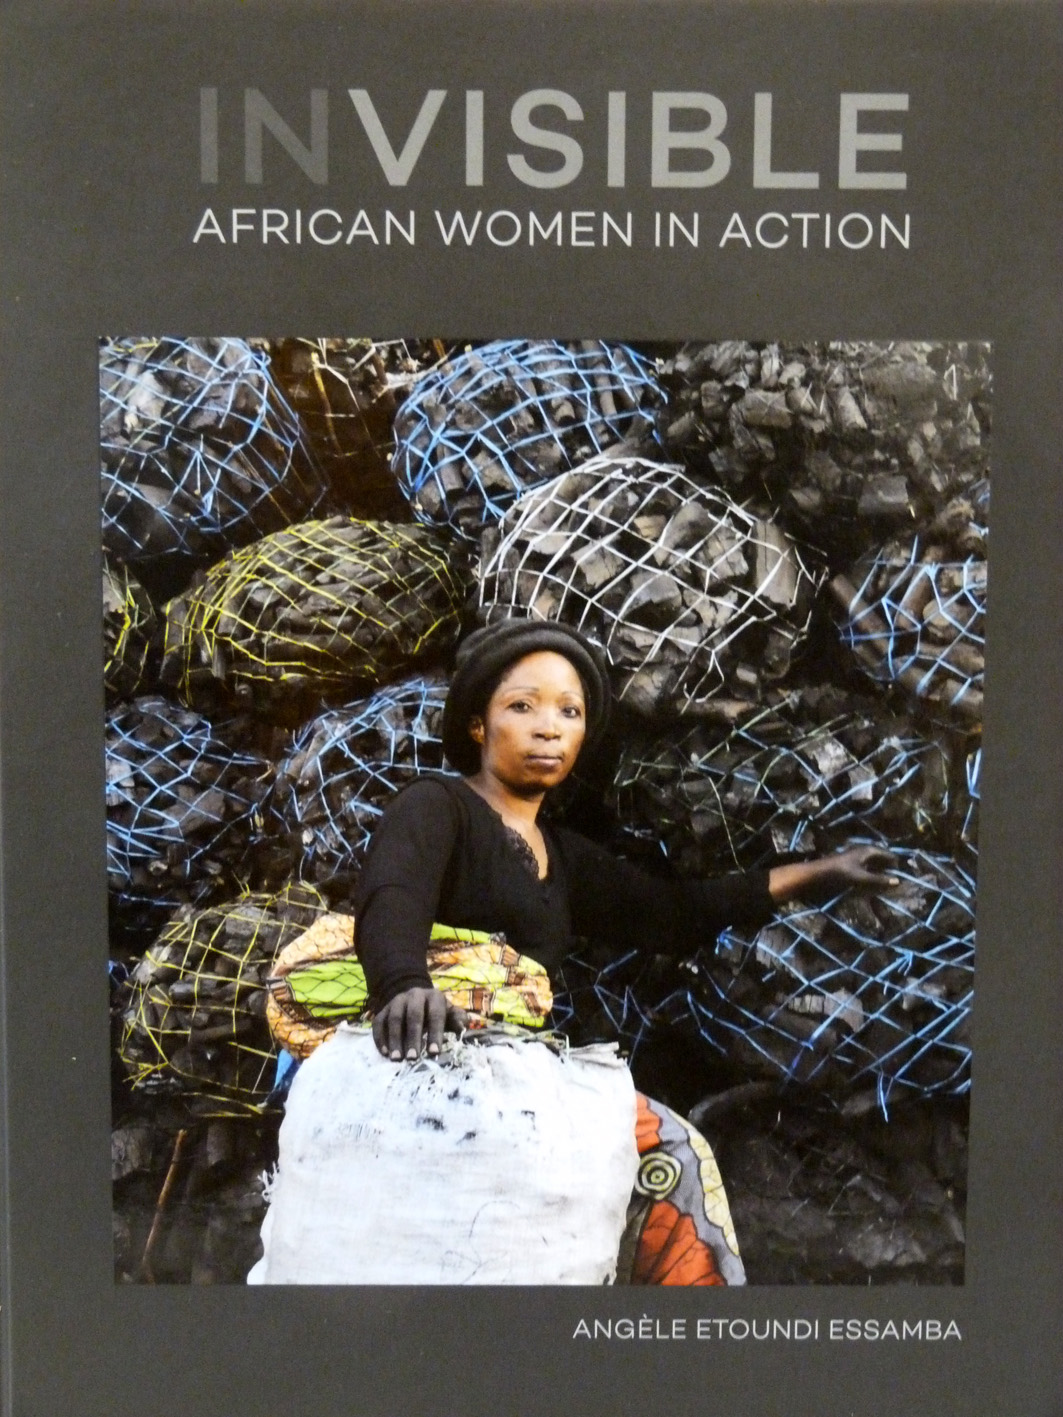 Angle Etoundi Essamba Invisible African Women in Action